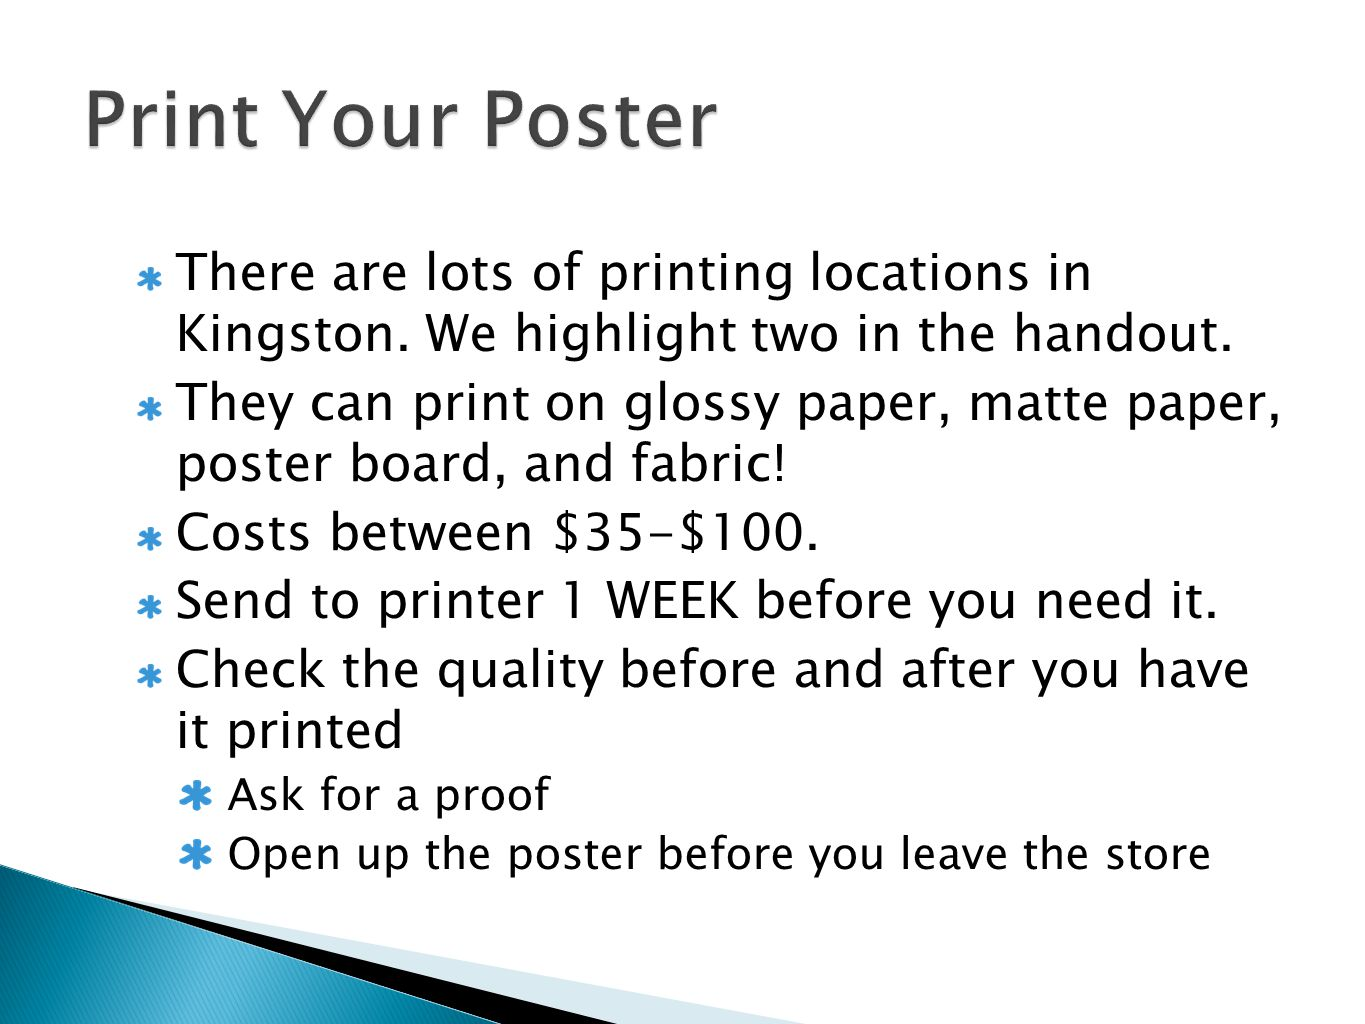 There are lots of printing locations in Kingston. We highlight two in the handout.